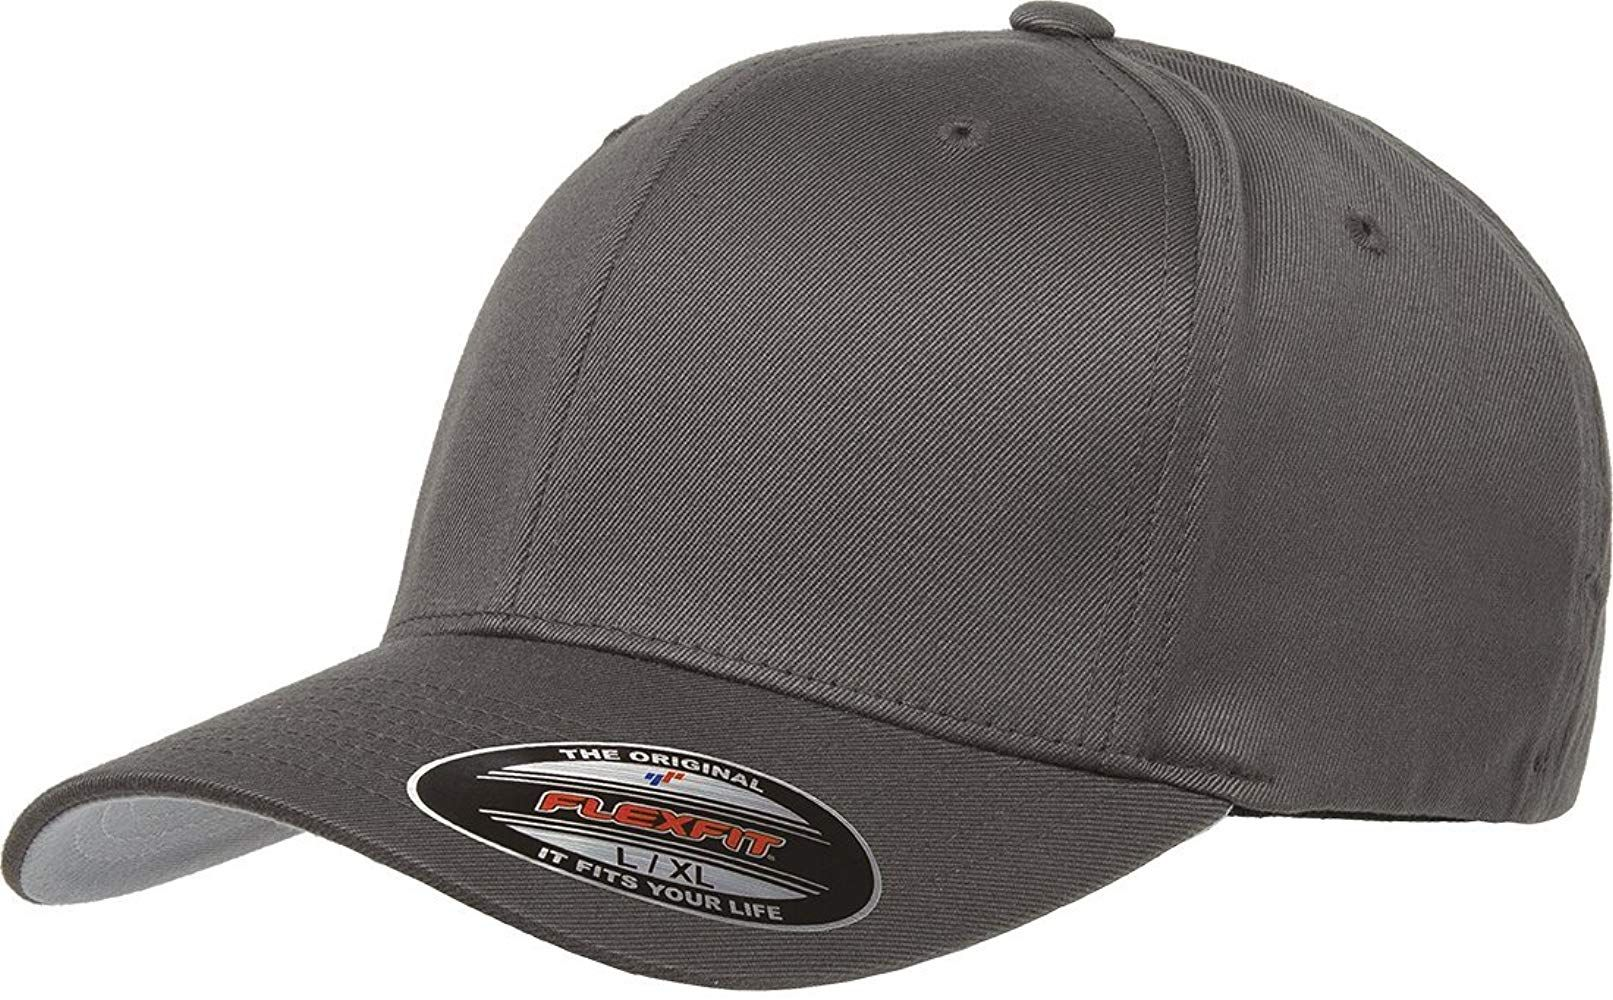 Flexfit mens athletic baseball fitted cap adult sm 6 3